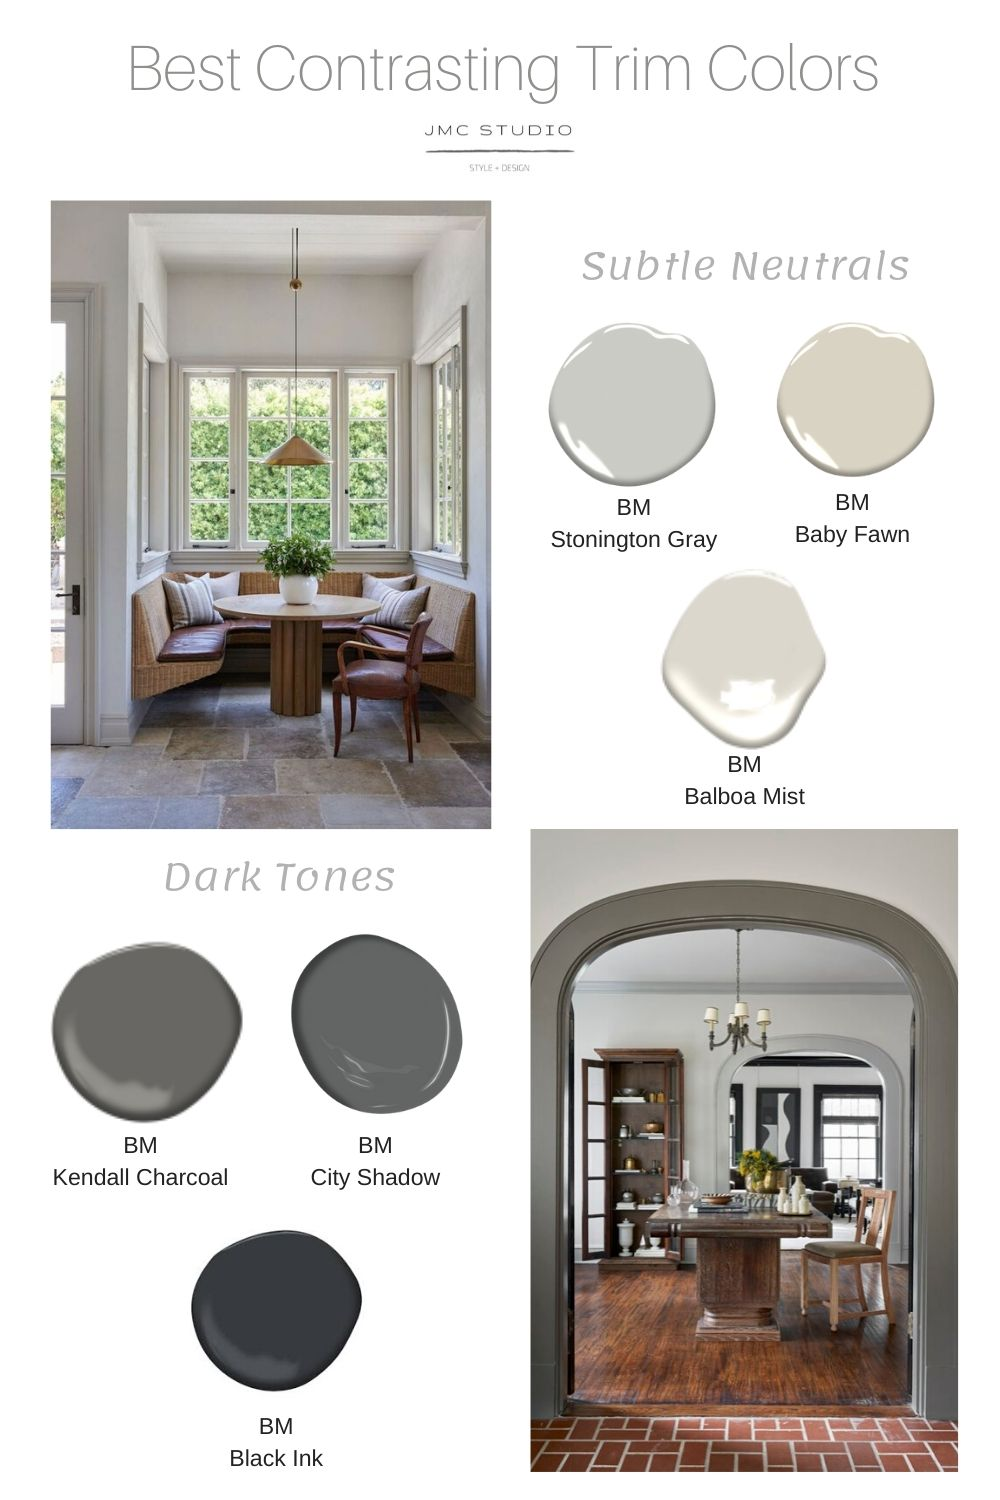 Modern Craftsman Interior Colors : modern, craftsman, interior, colors, Contrasting, Trim:, Trend?, Interior, House, Colors,, Moldings, Trim,, Painting